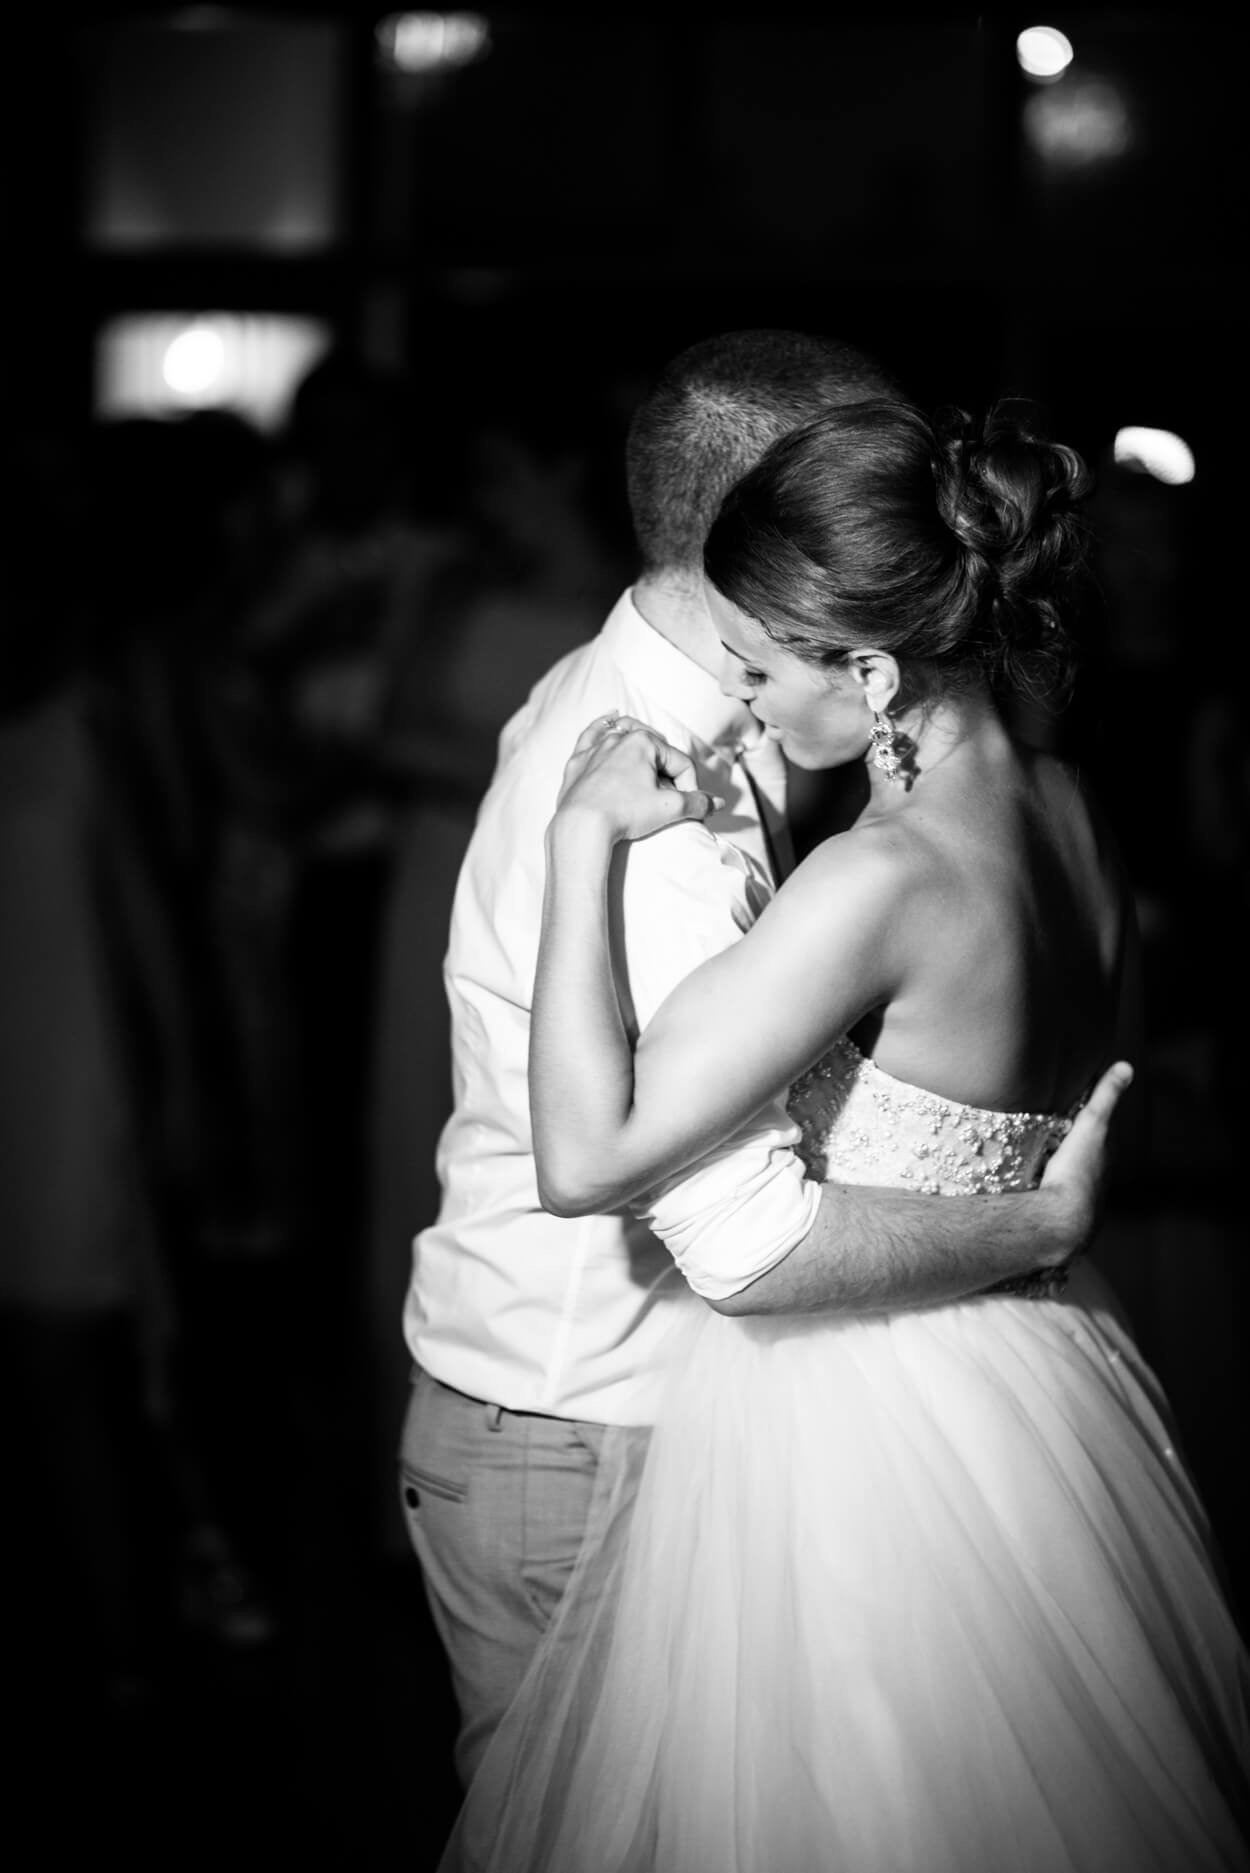 bride groom first dance black white photo soft touch